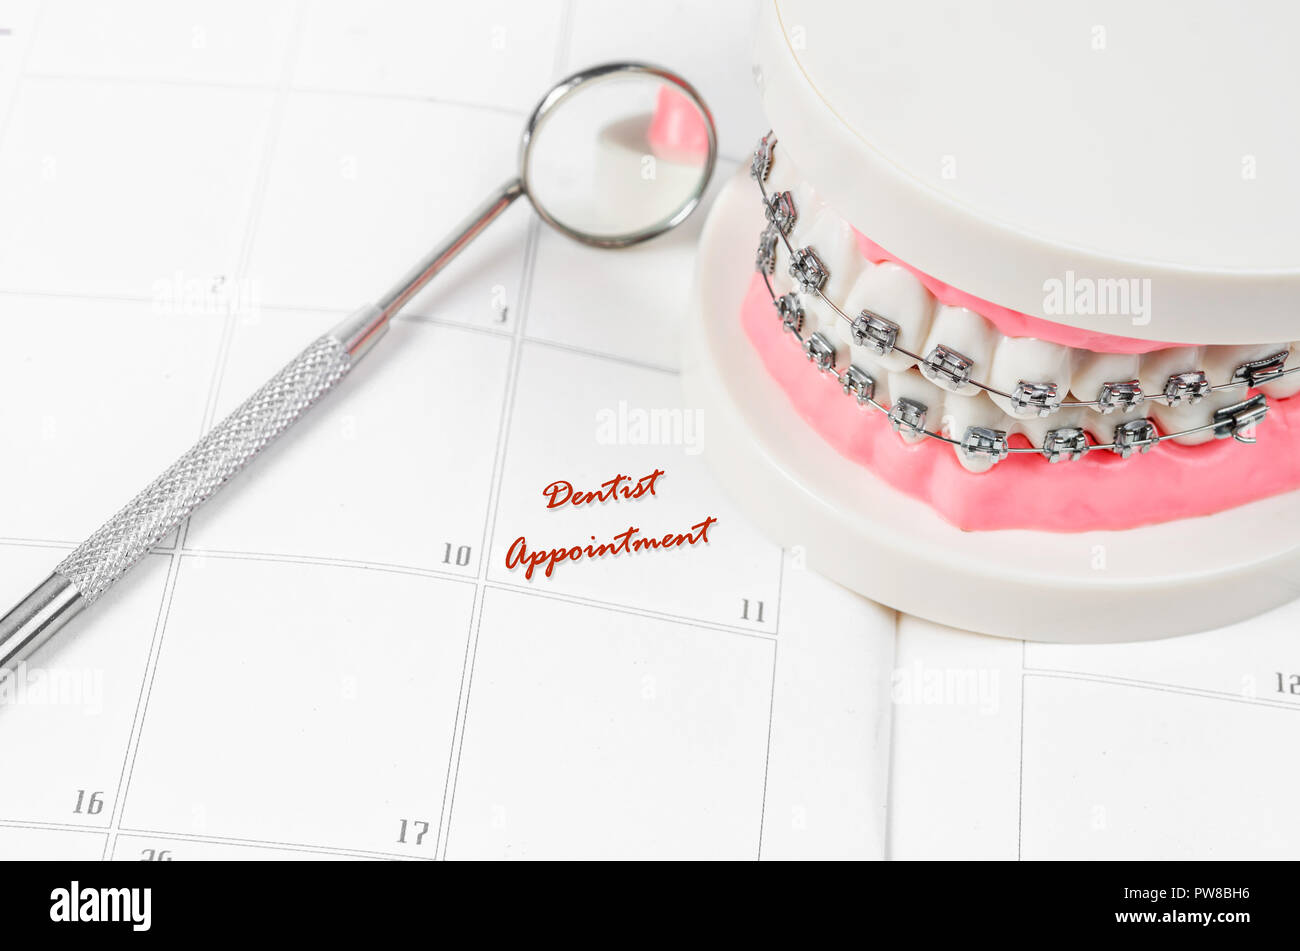 Tooth model with metal wire dental braces with dentist appointment on a calendar. Regular checkups are essential to oral health - Stock Image